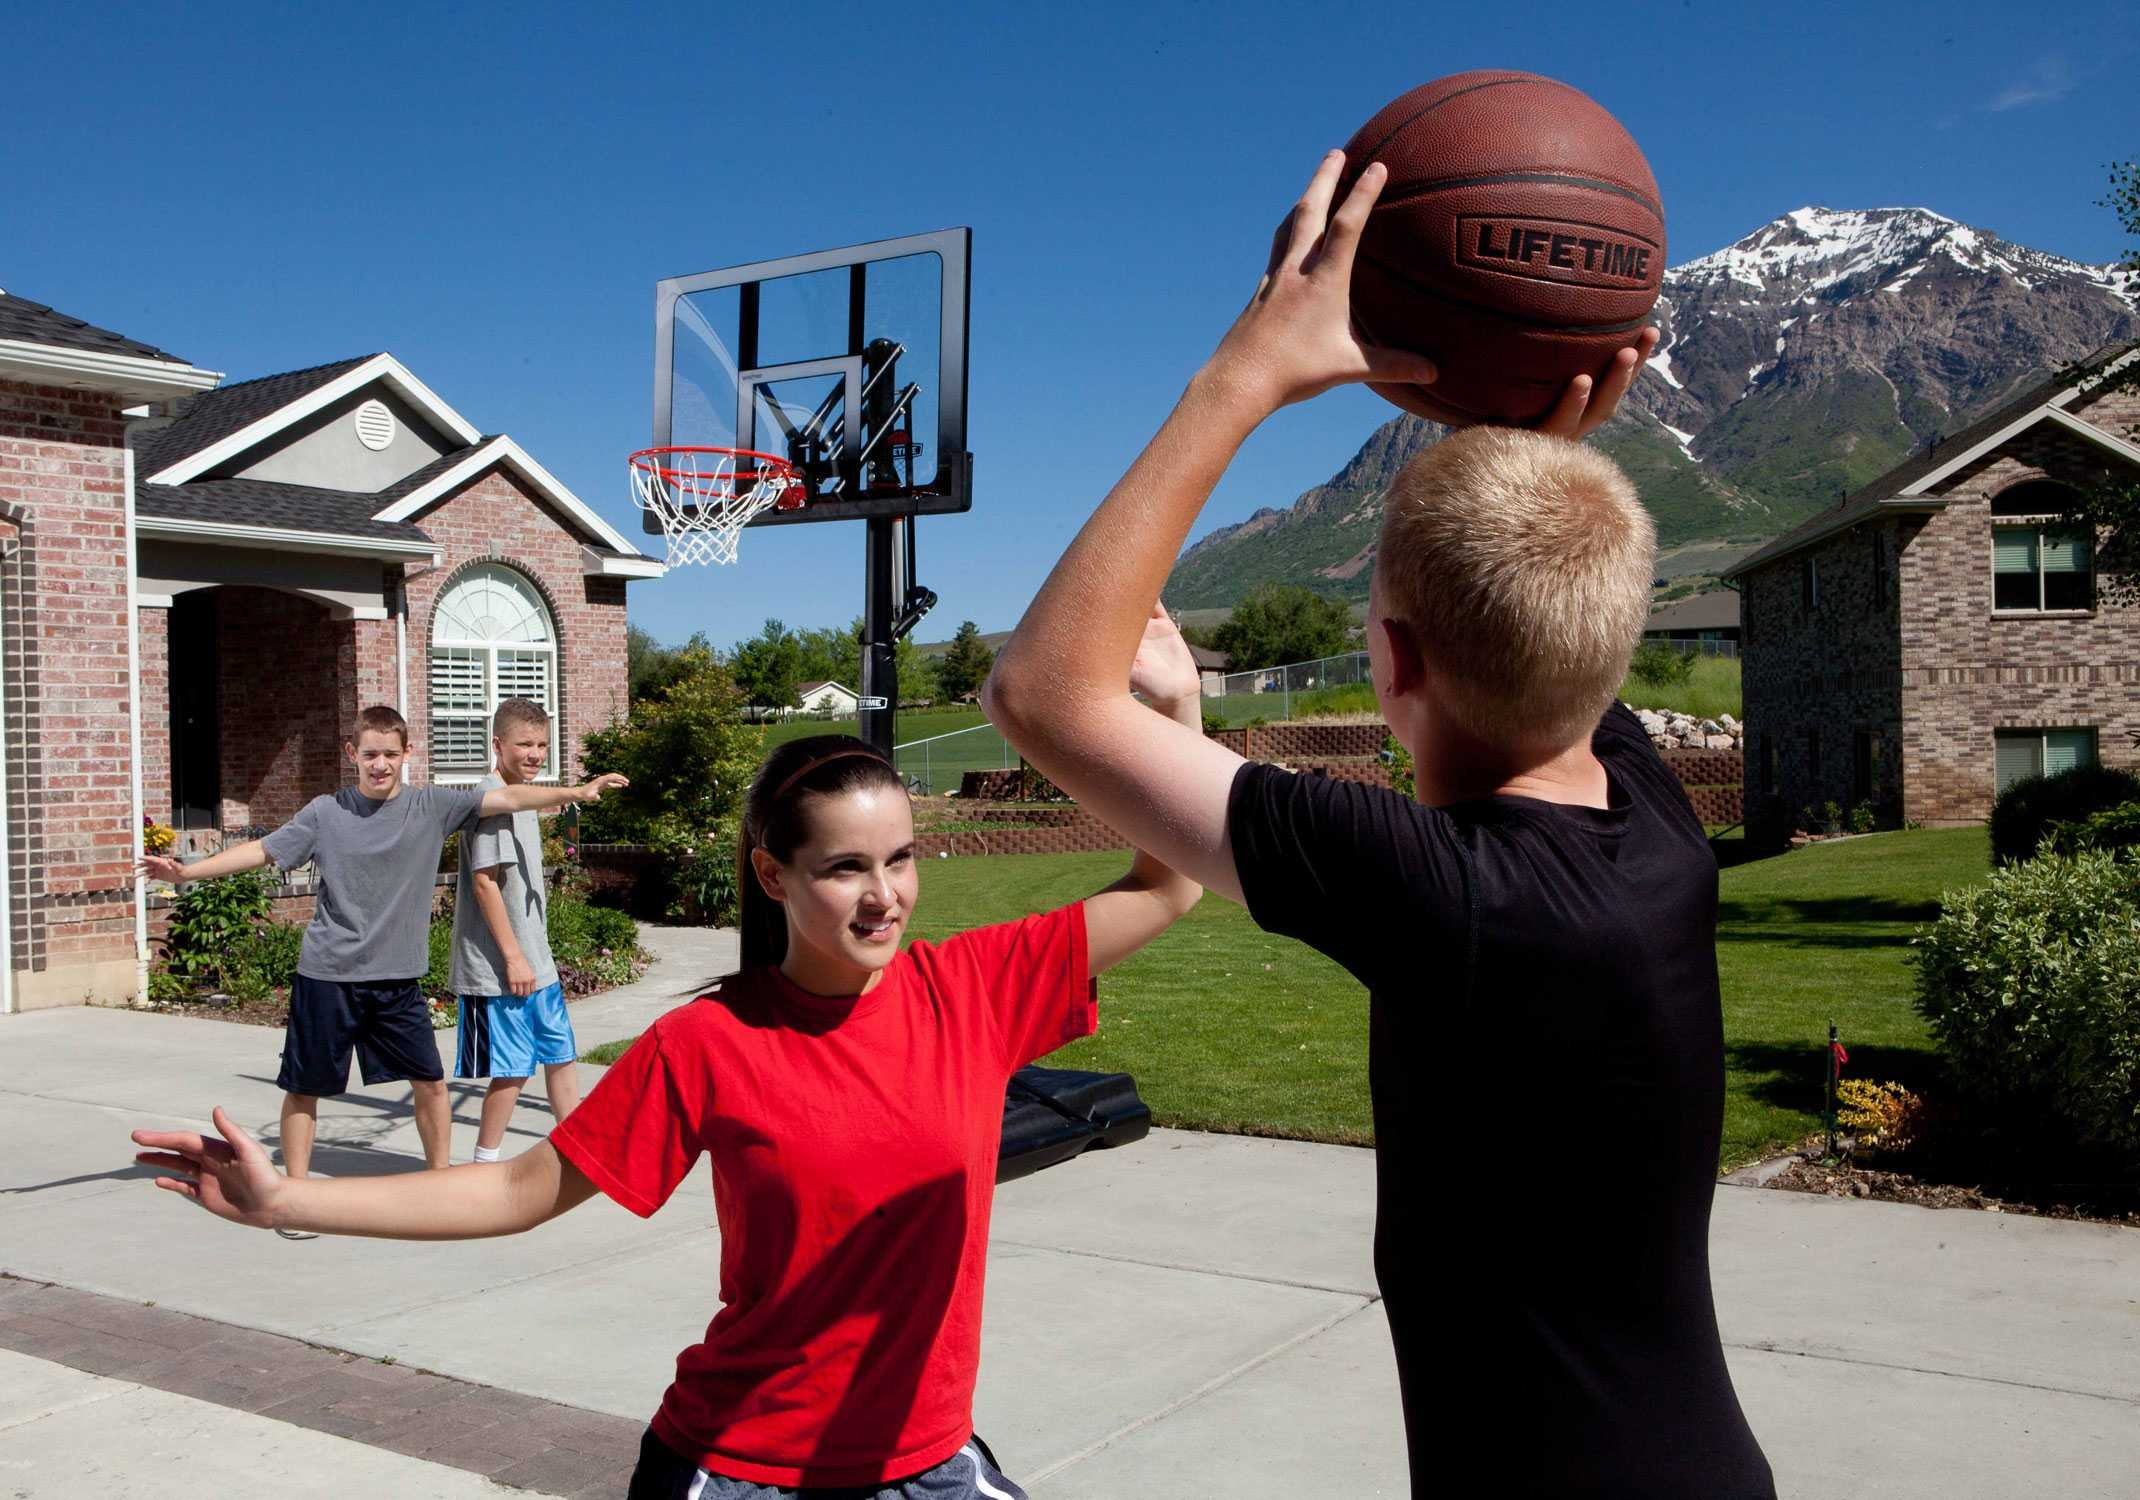 Lifetime 71286 XL Portable Basketball System, 52 Inch Shatterproof Backboard by Lifetime